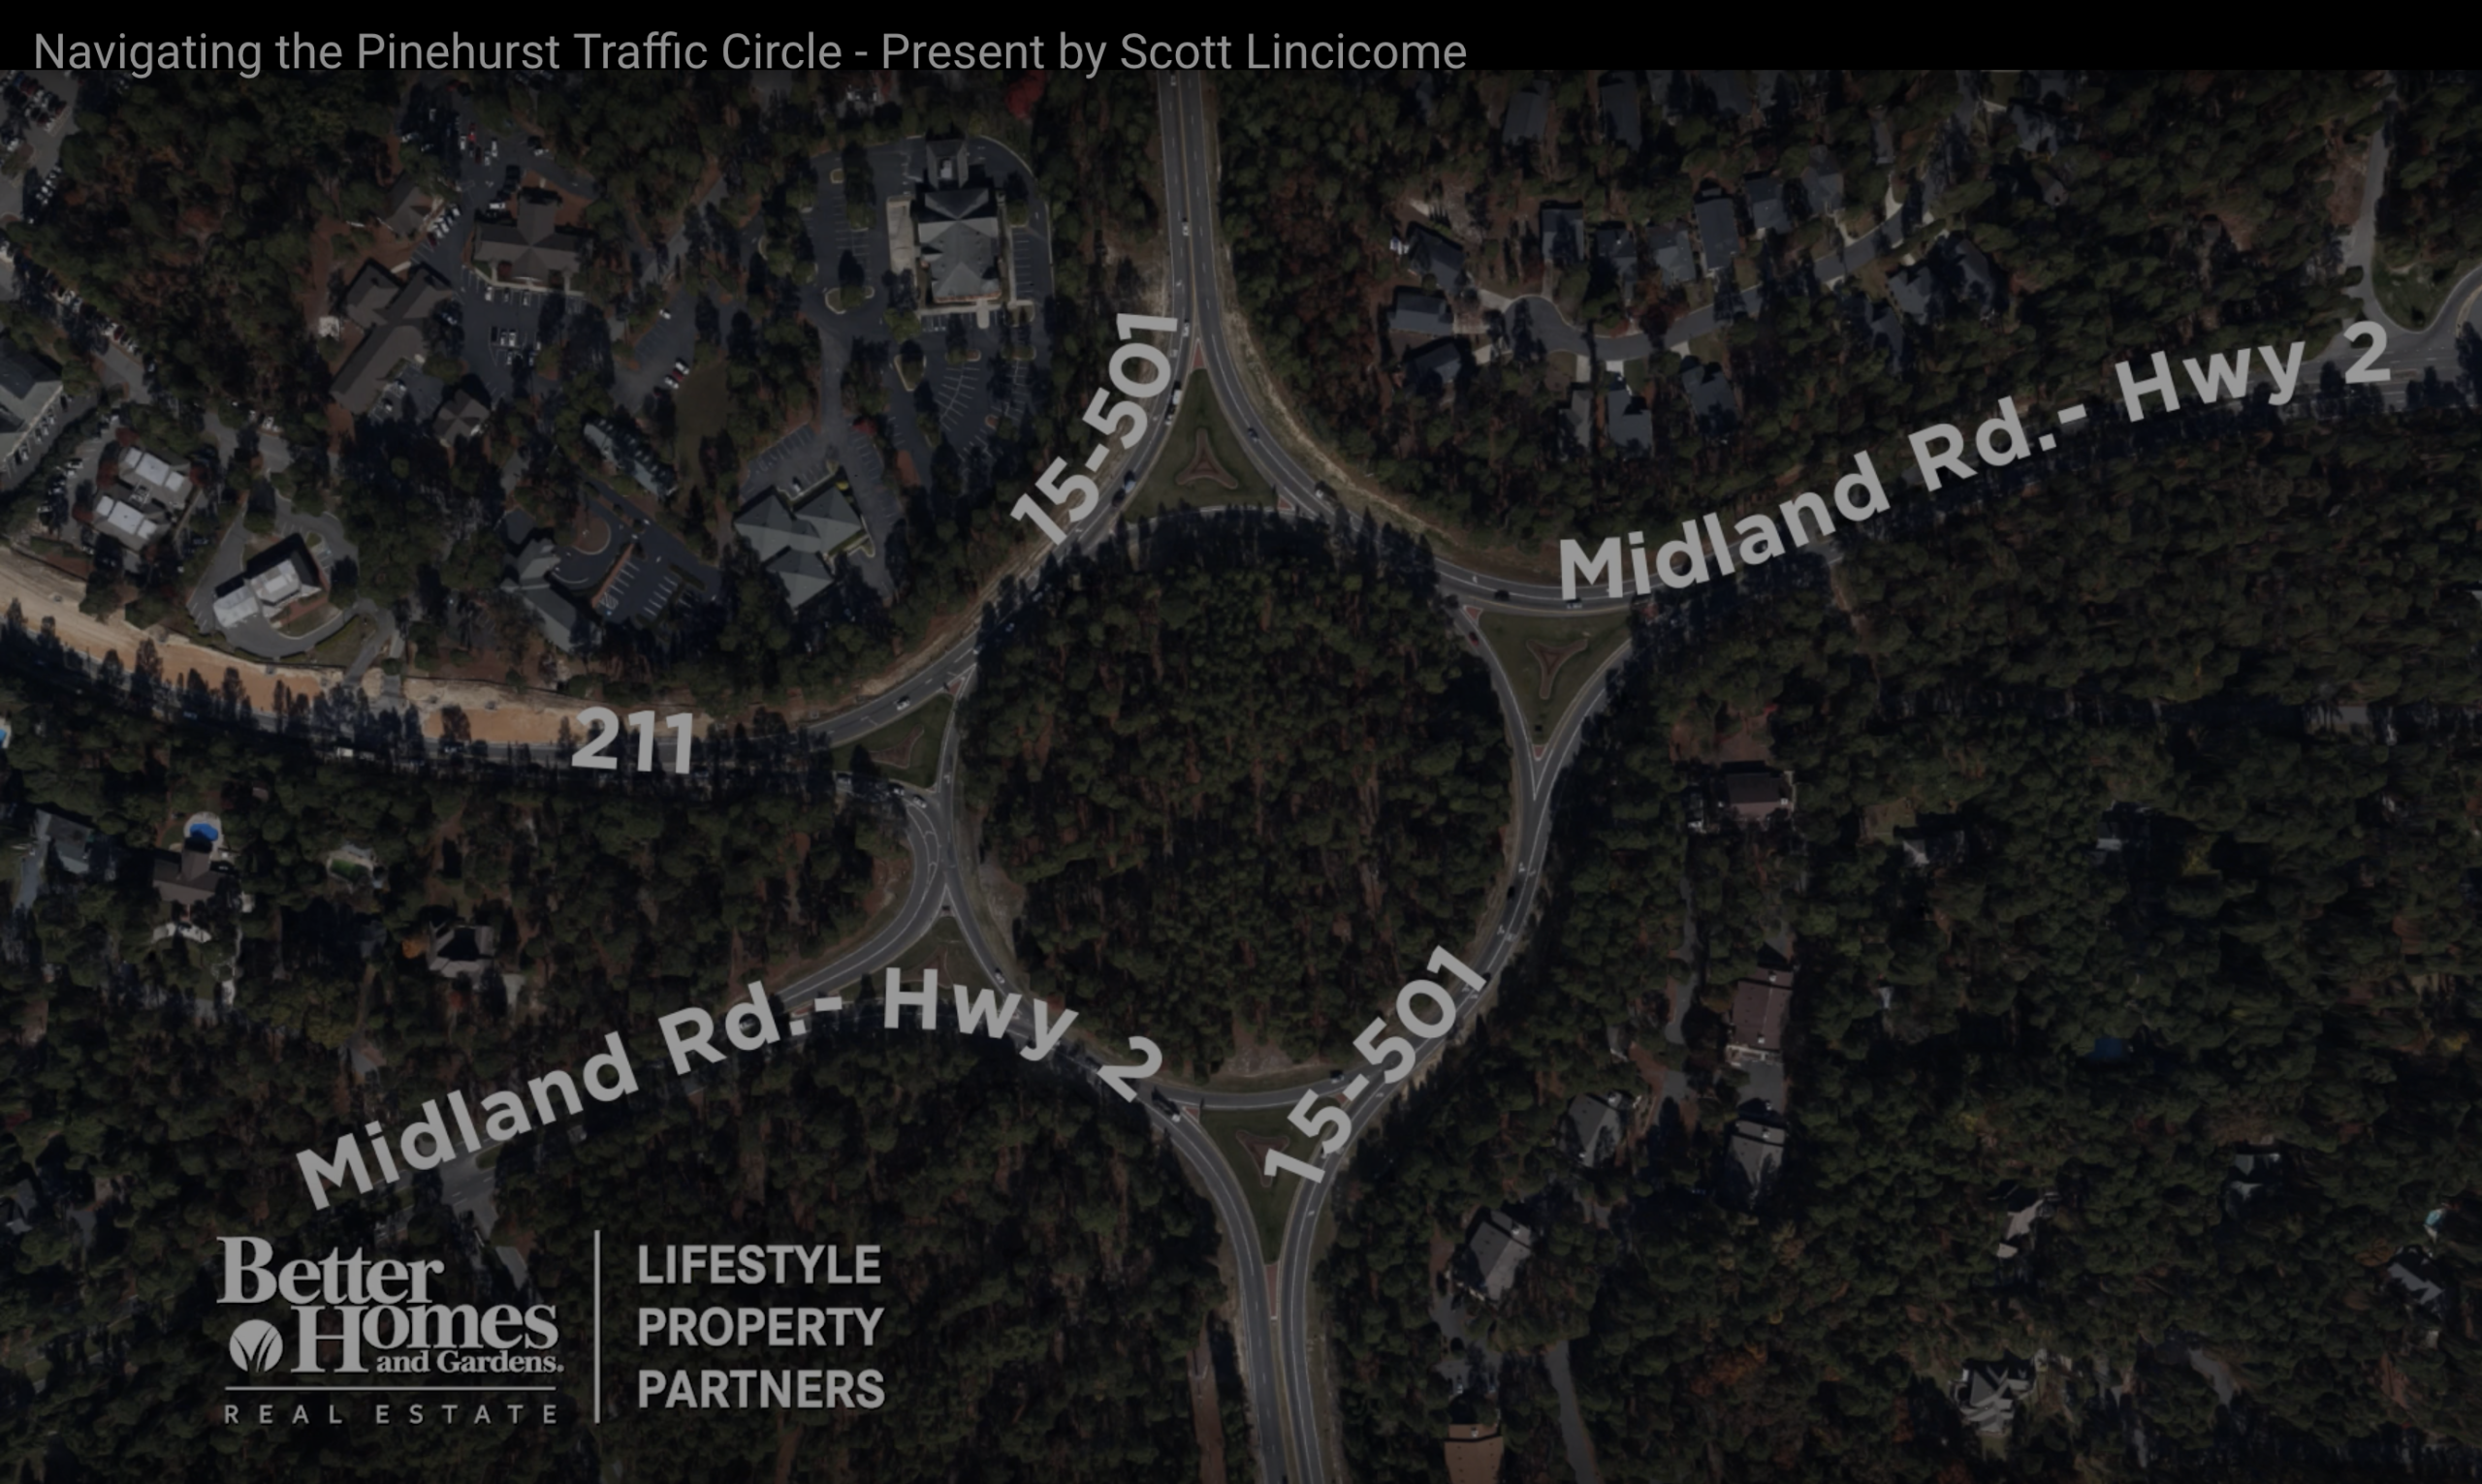 How to Navigate the Pinehurst/Southern Pines Traffic Circle